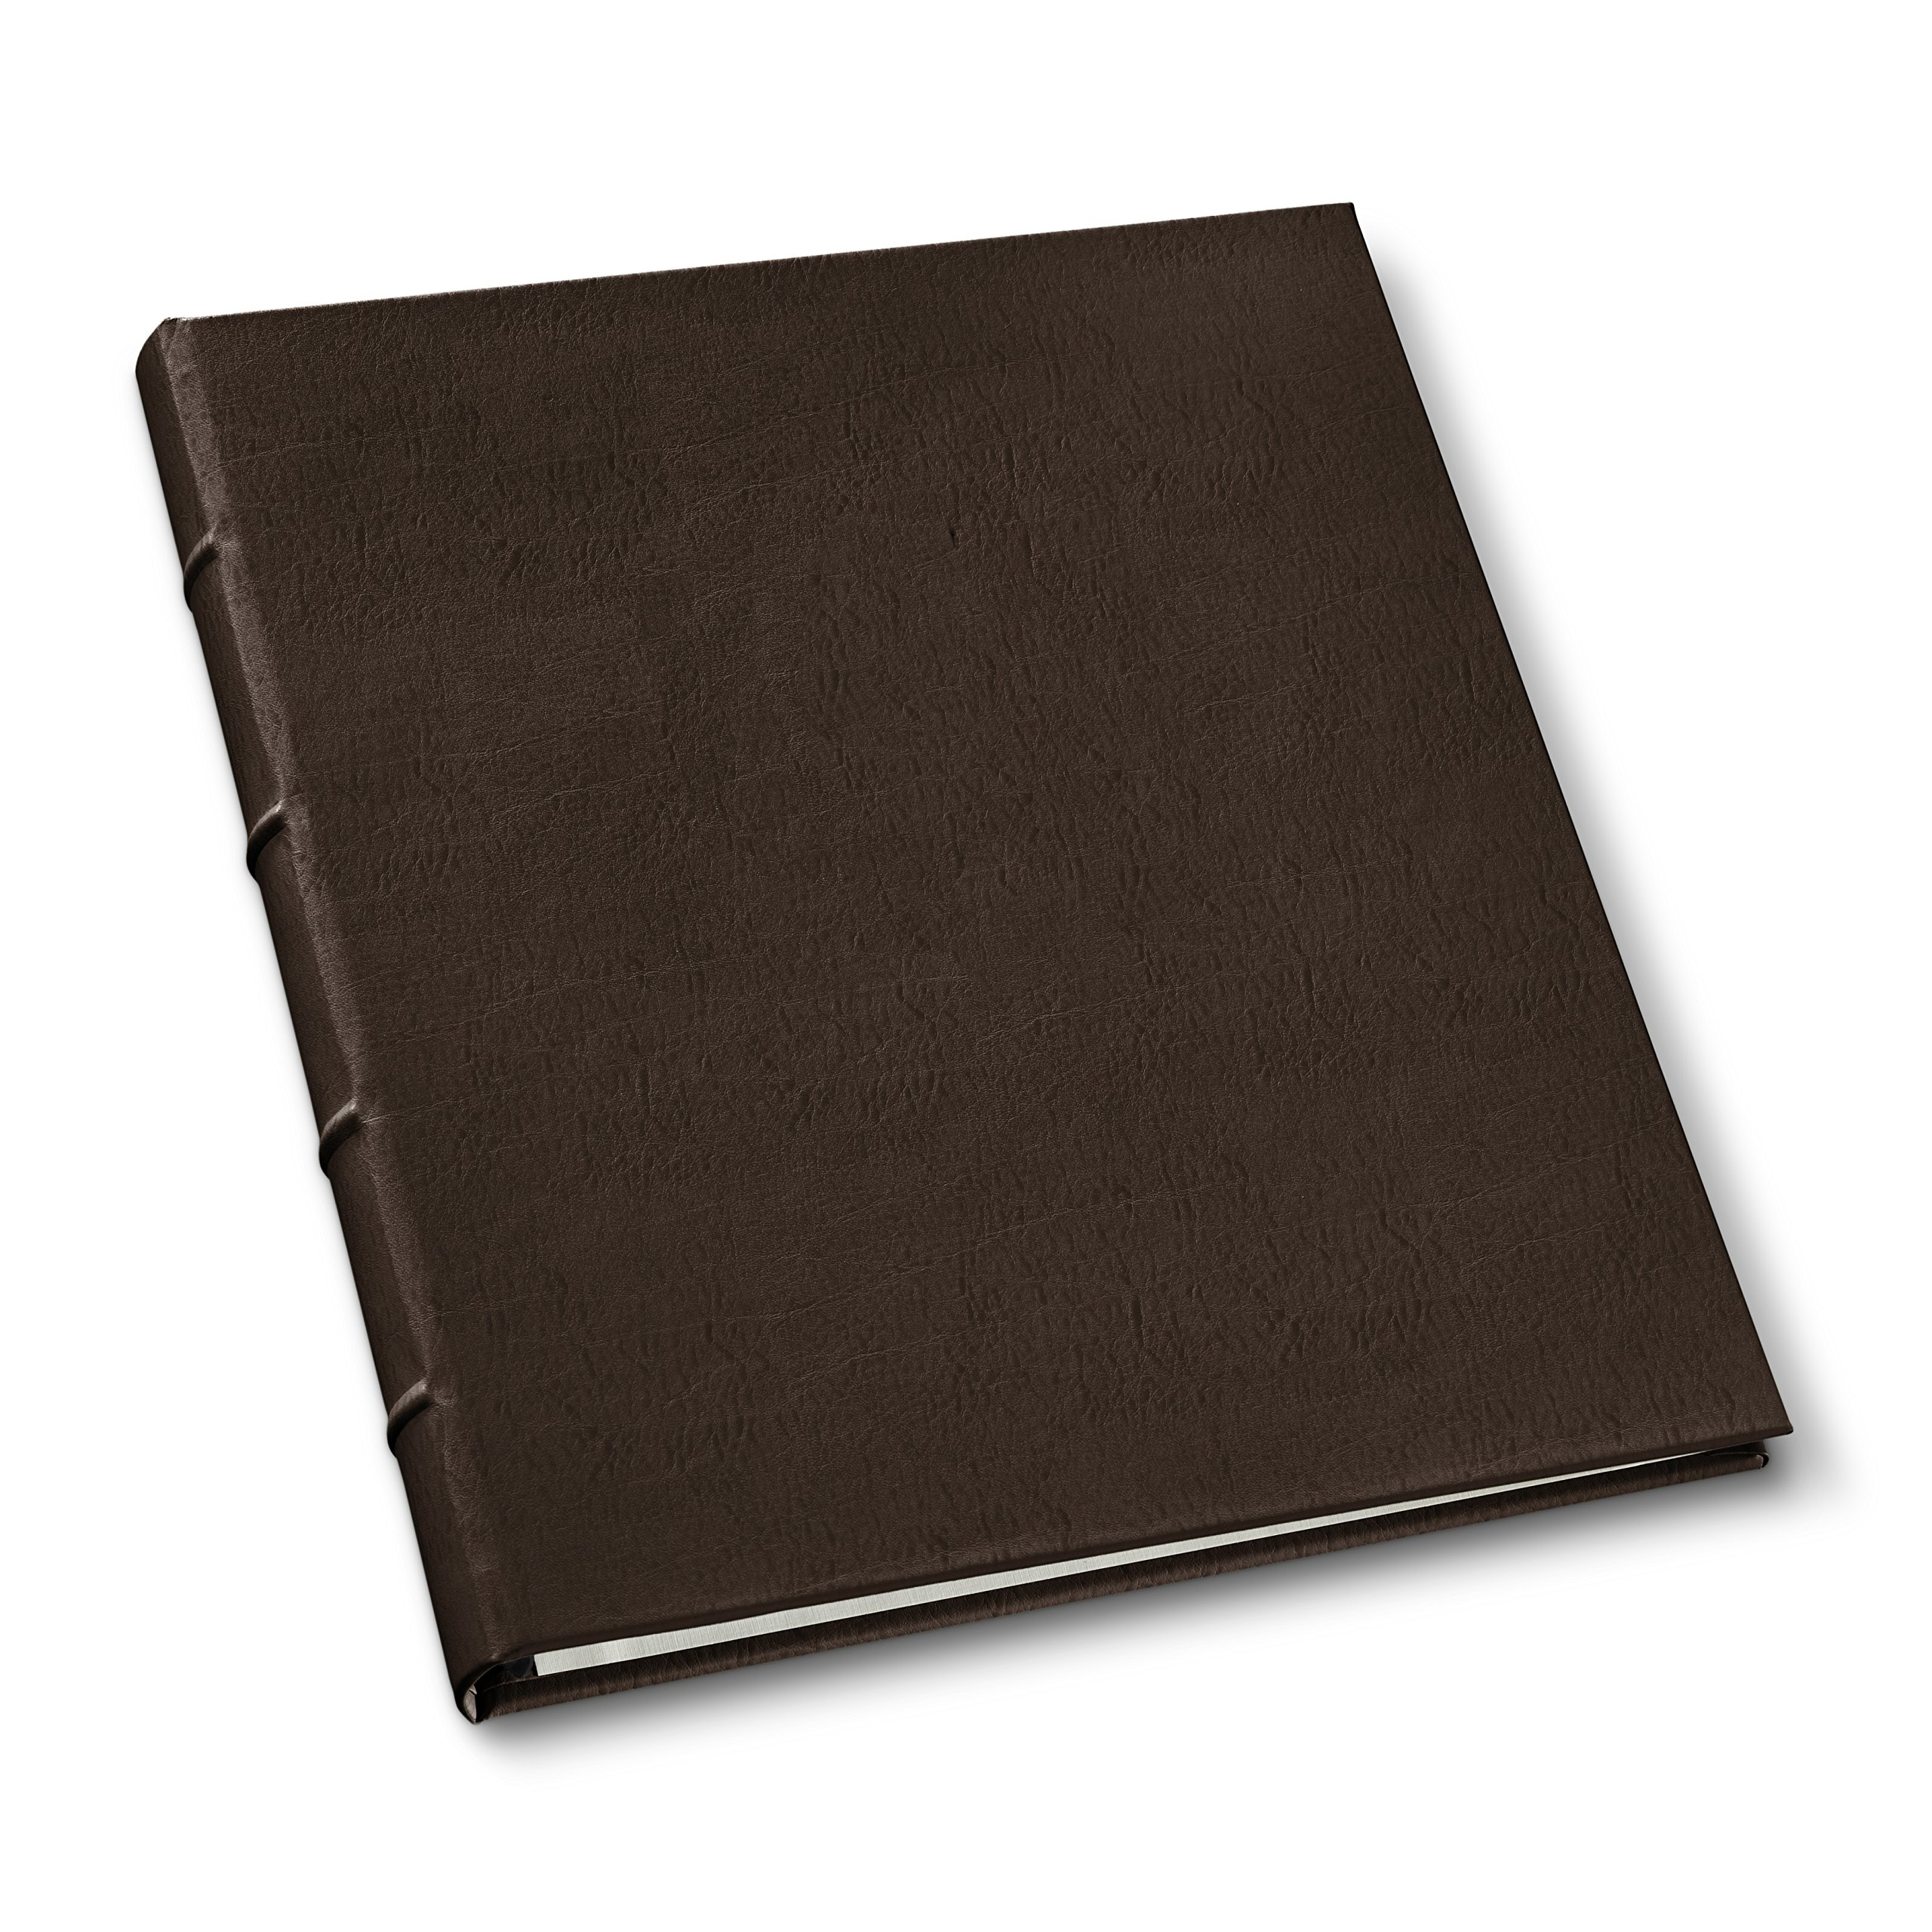 Gallery Leather Presentation Binder .75'' Hubbed Spine Freeport Mocha by Gallery Leather